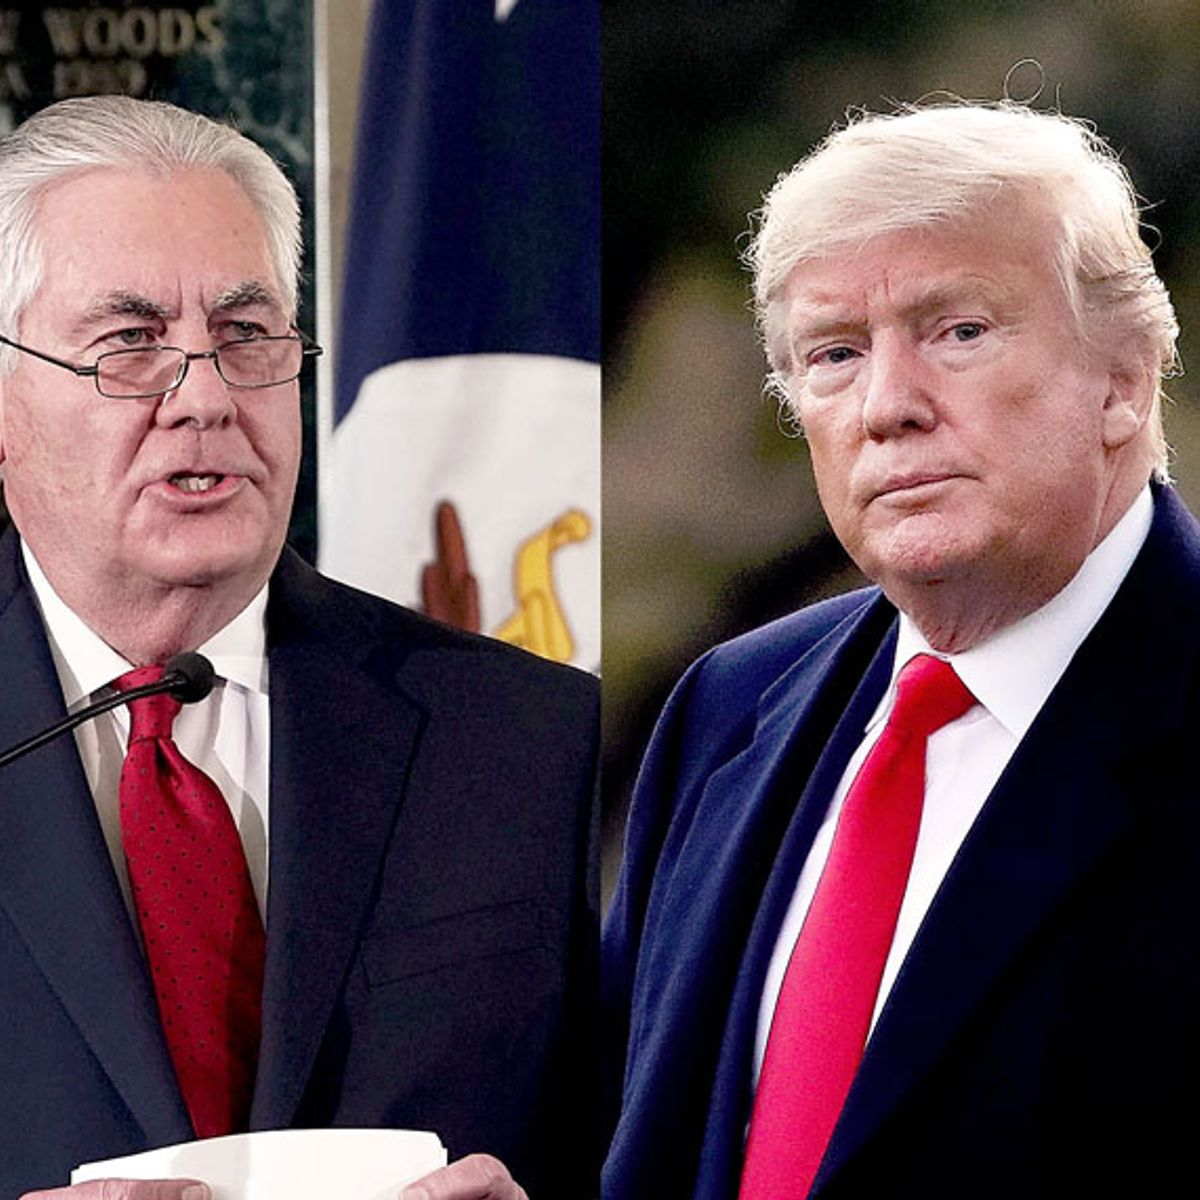 """Rex Tillerson says it is """"wrong"""" for a president to use foreign aid as collateral for personal gain"""